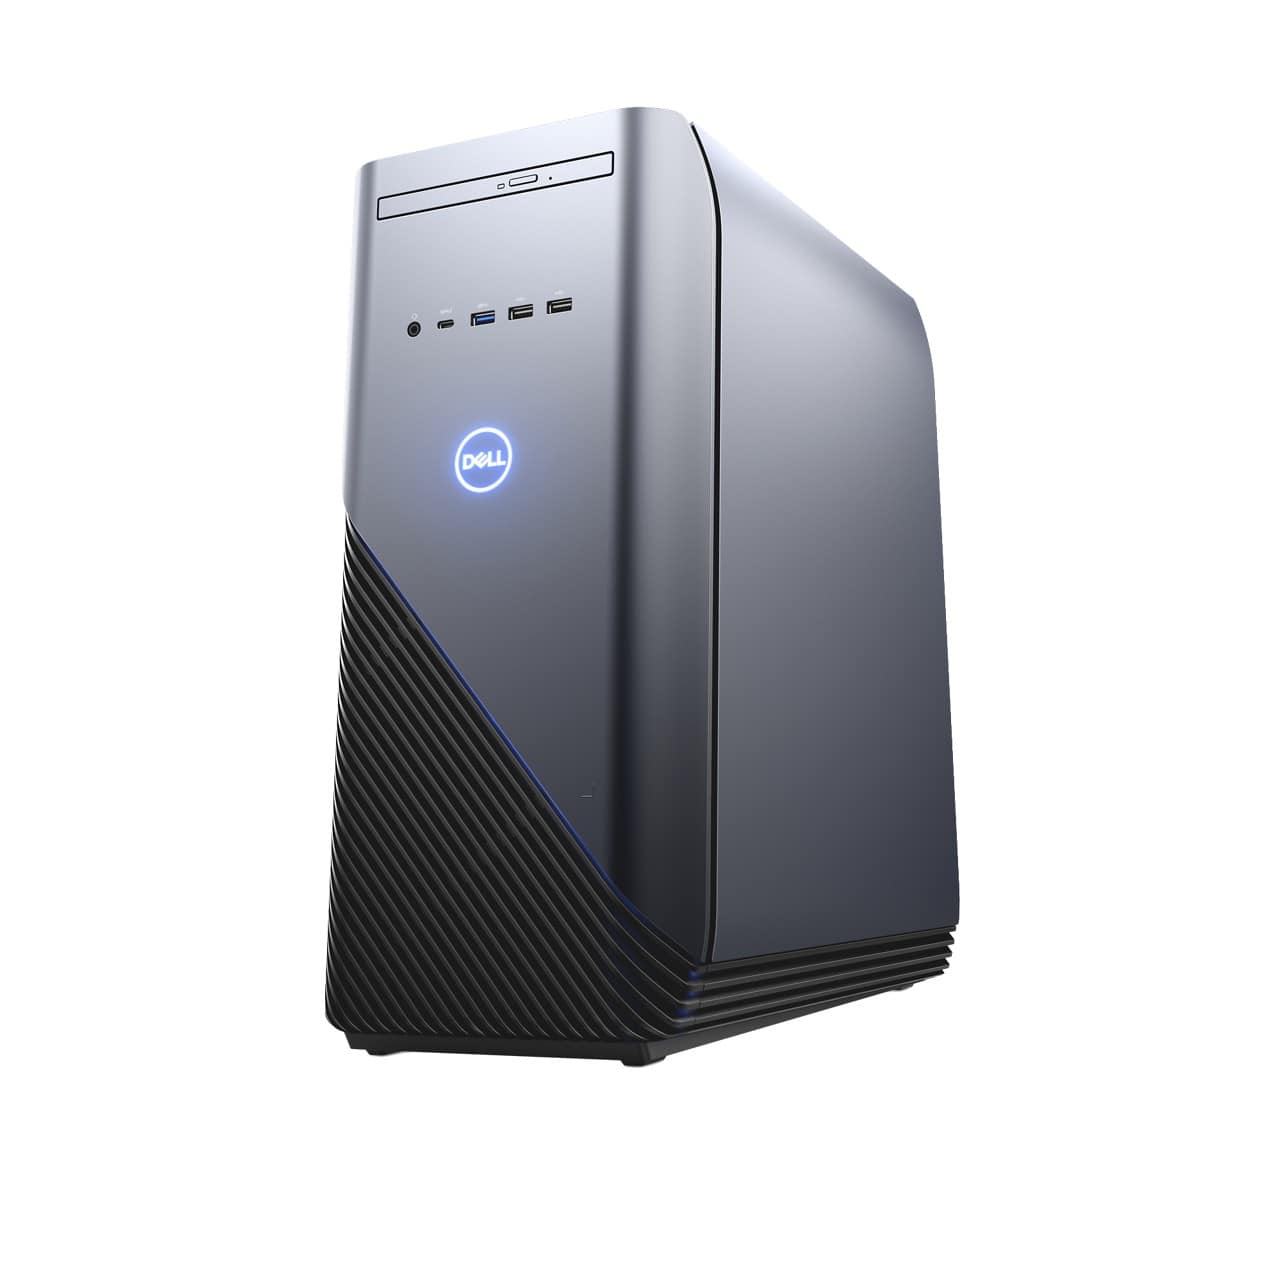 Dell-Inspiron-5000-Gaming-Desktop